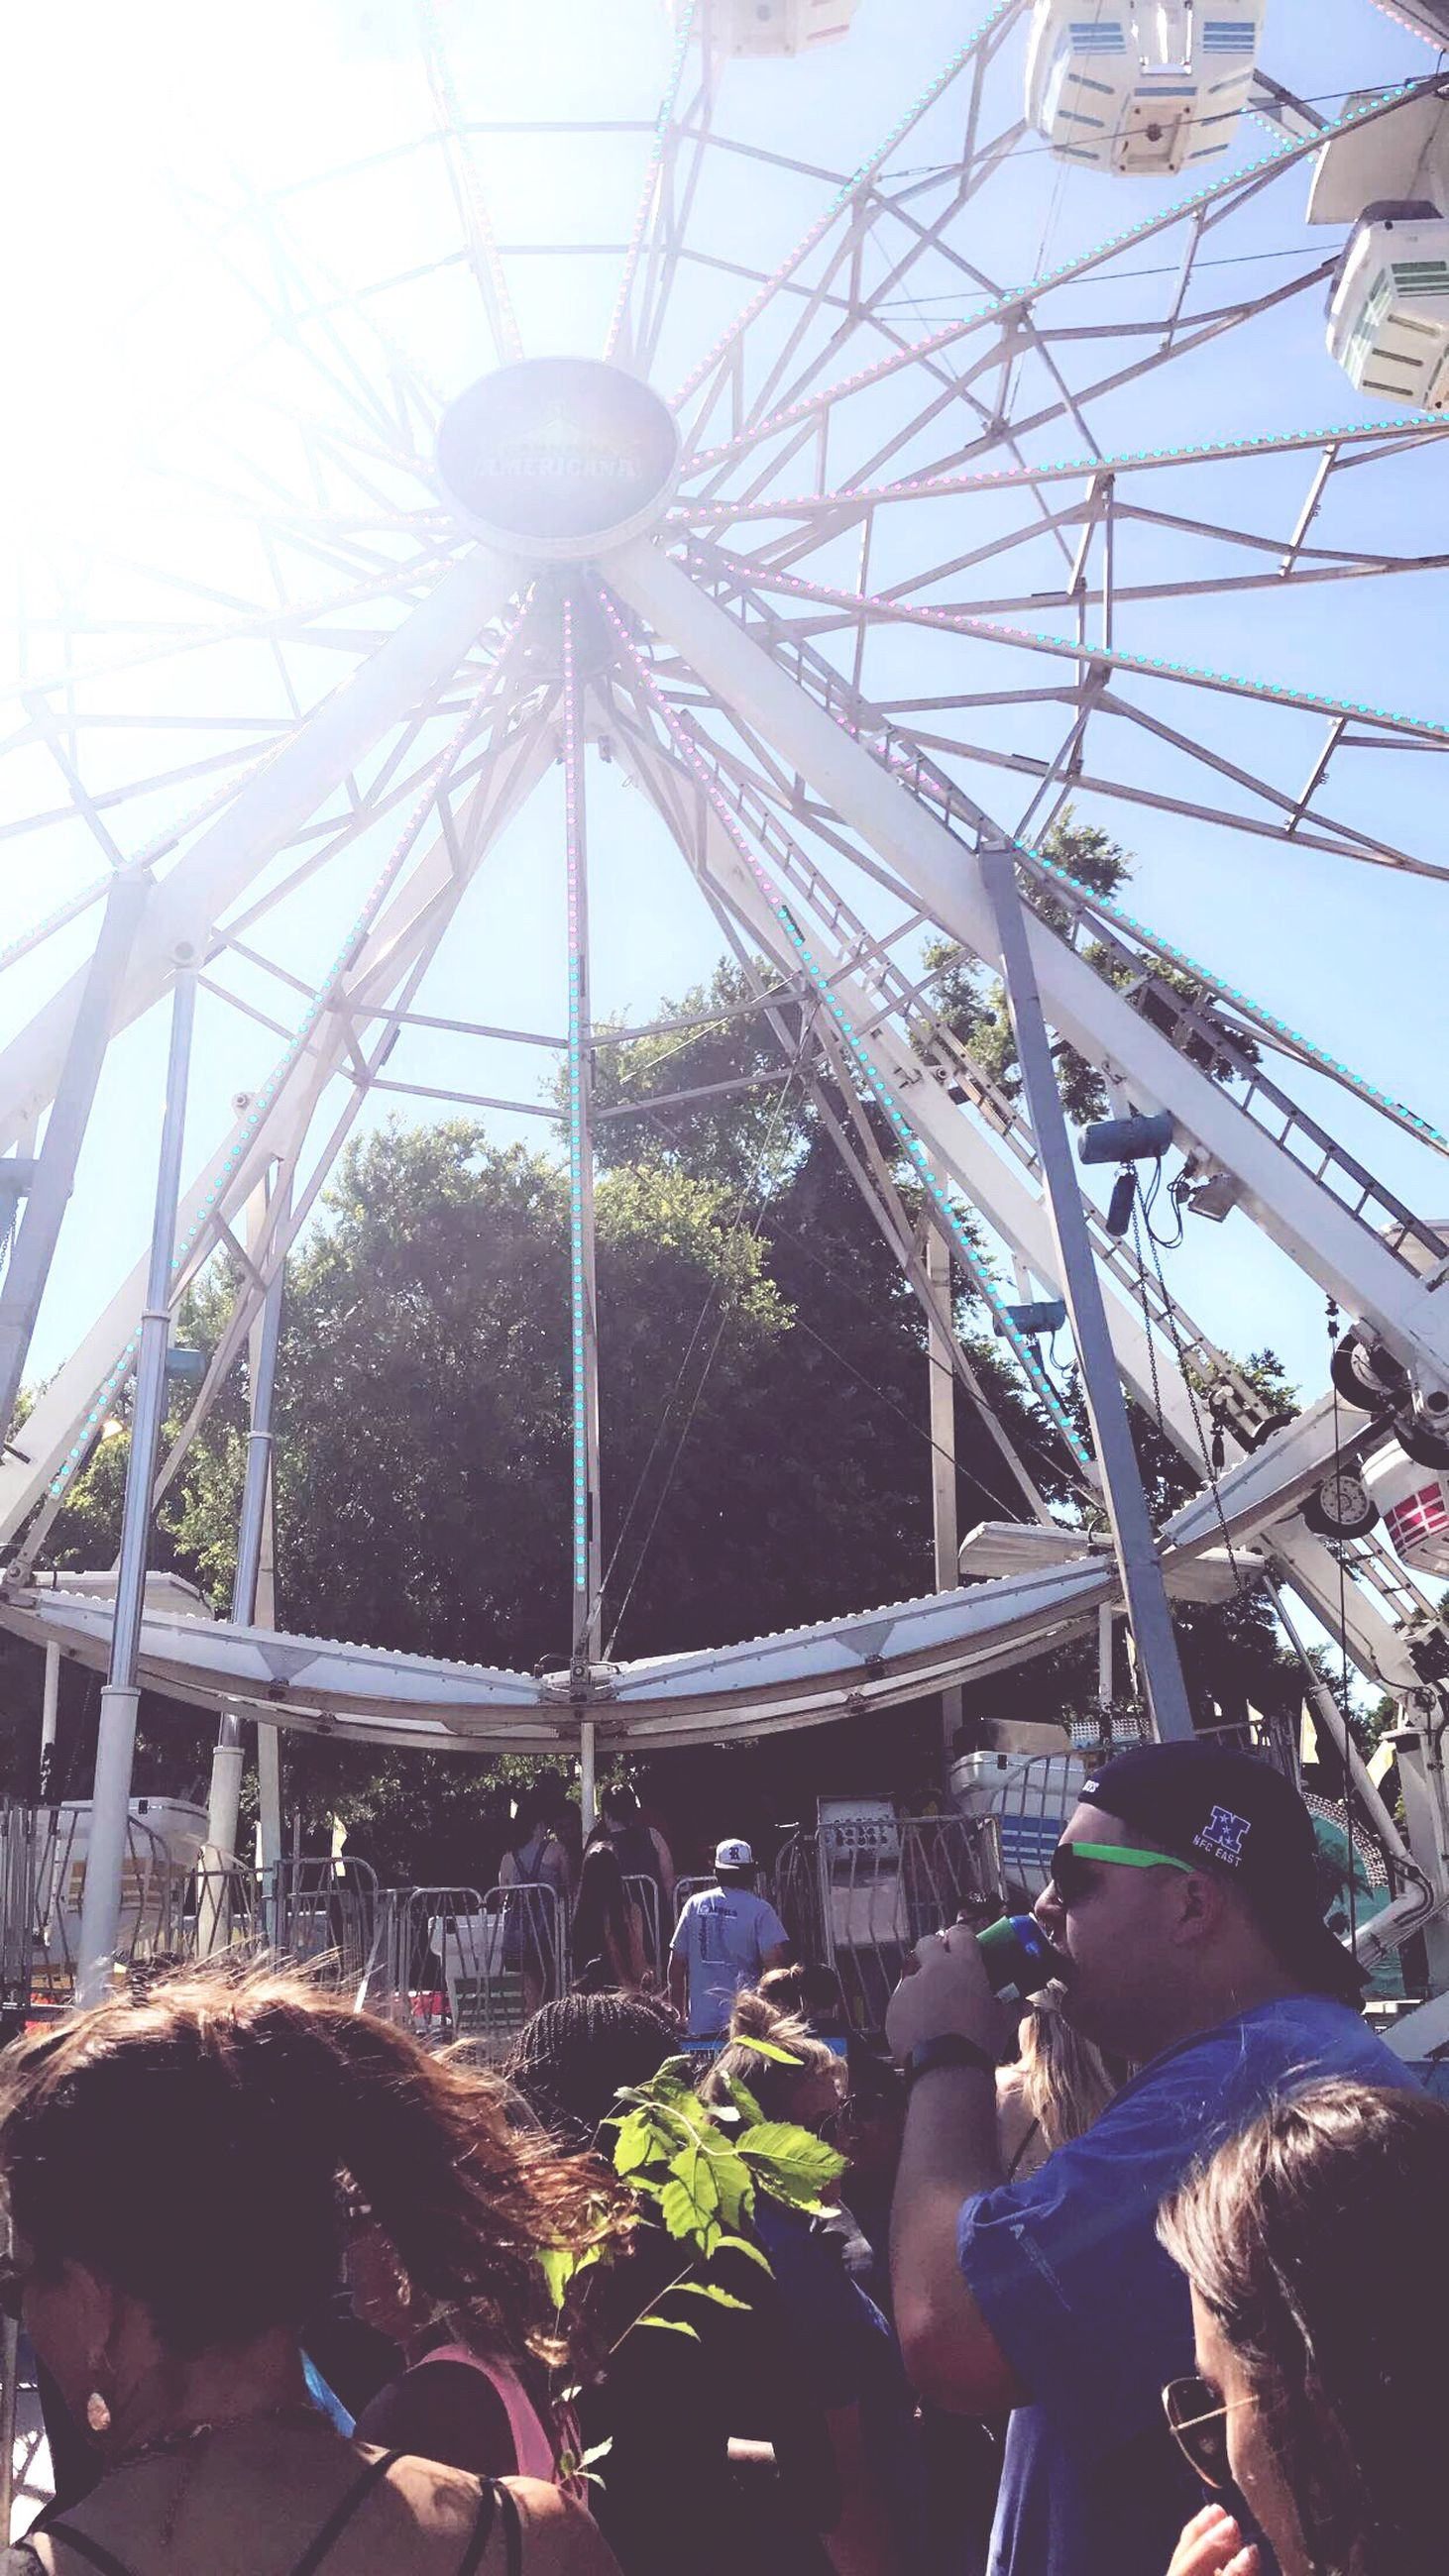 real people, leisure activity, amusement park, large group of people, arts culture and entertainment, fun, childhood, day, low angle view, lifestyles, outdoors, men, amusement park ride, togetherness, group of people, women, friendship, crowd, sky, people